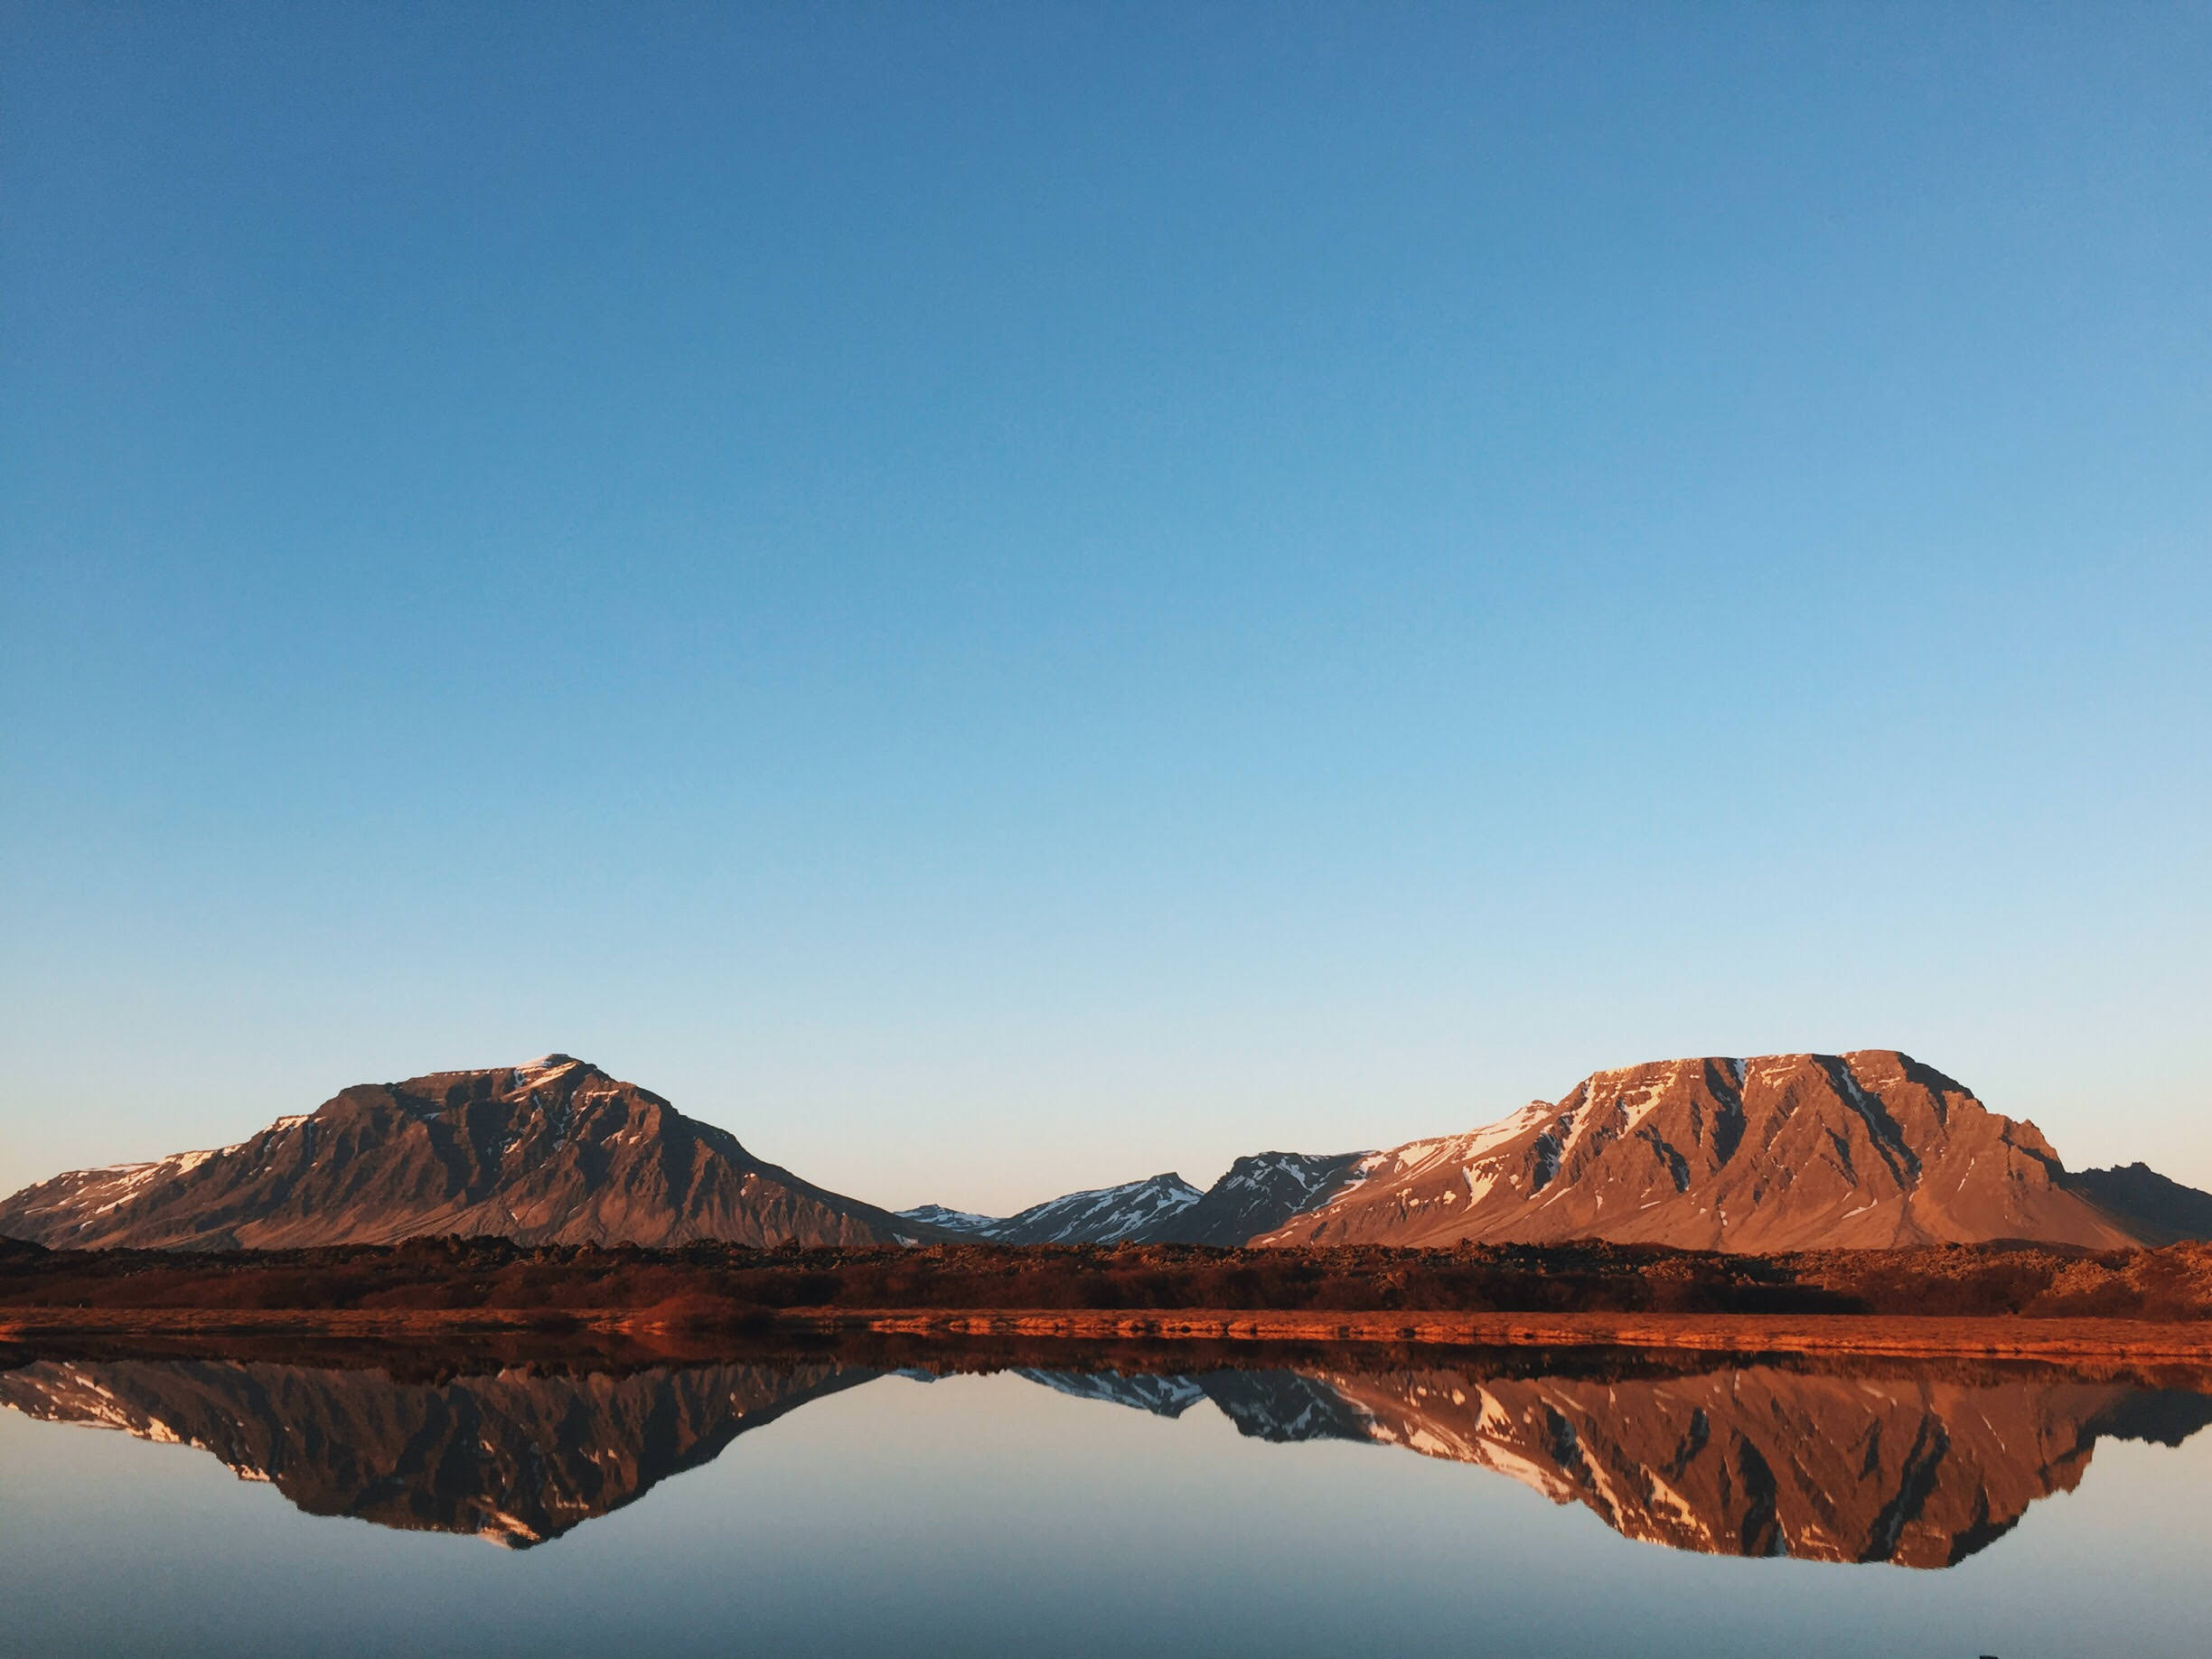 Reflection of mountains in the lake, reflection, mountains, rocky, lake, calm, landscape